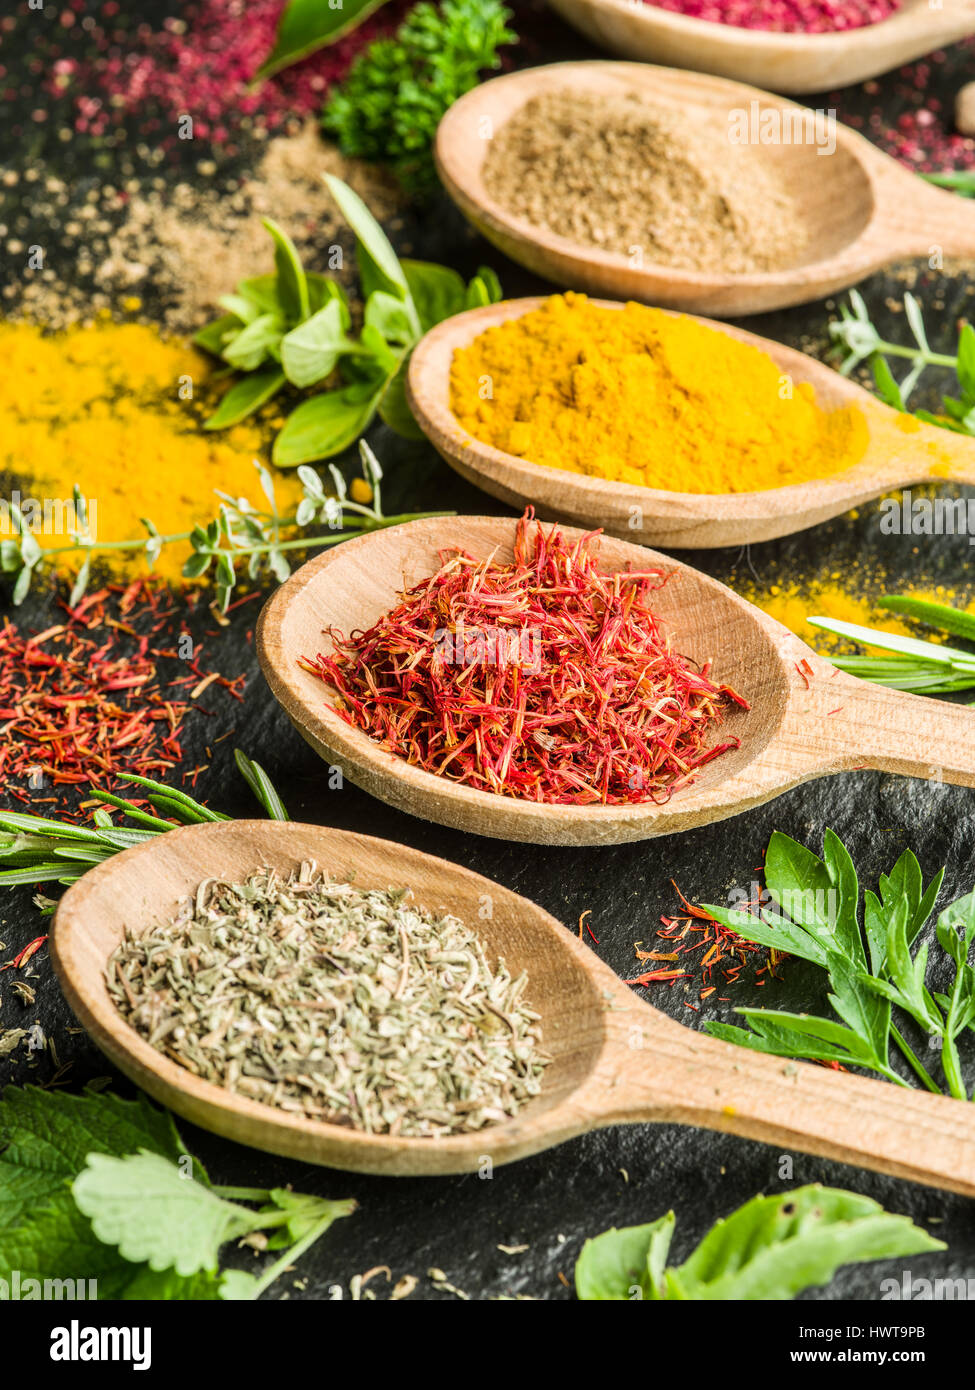 Assortment of colorful spices in the wooden spoons. - Stock Image